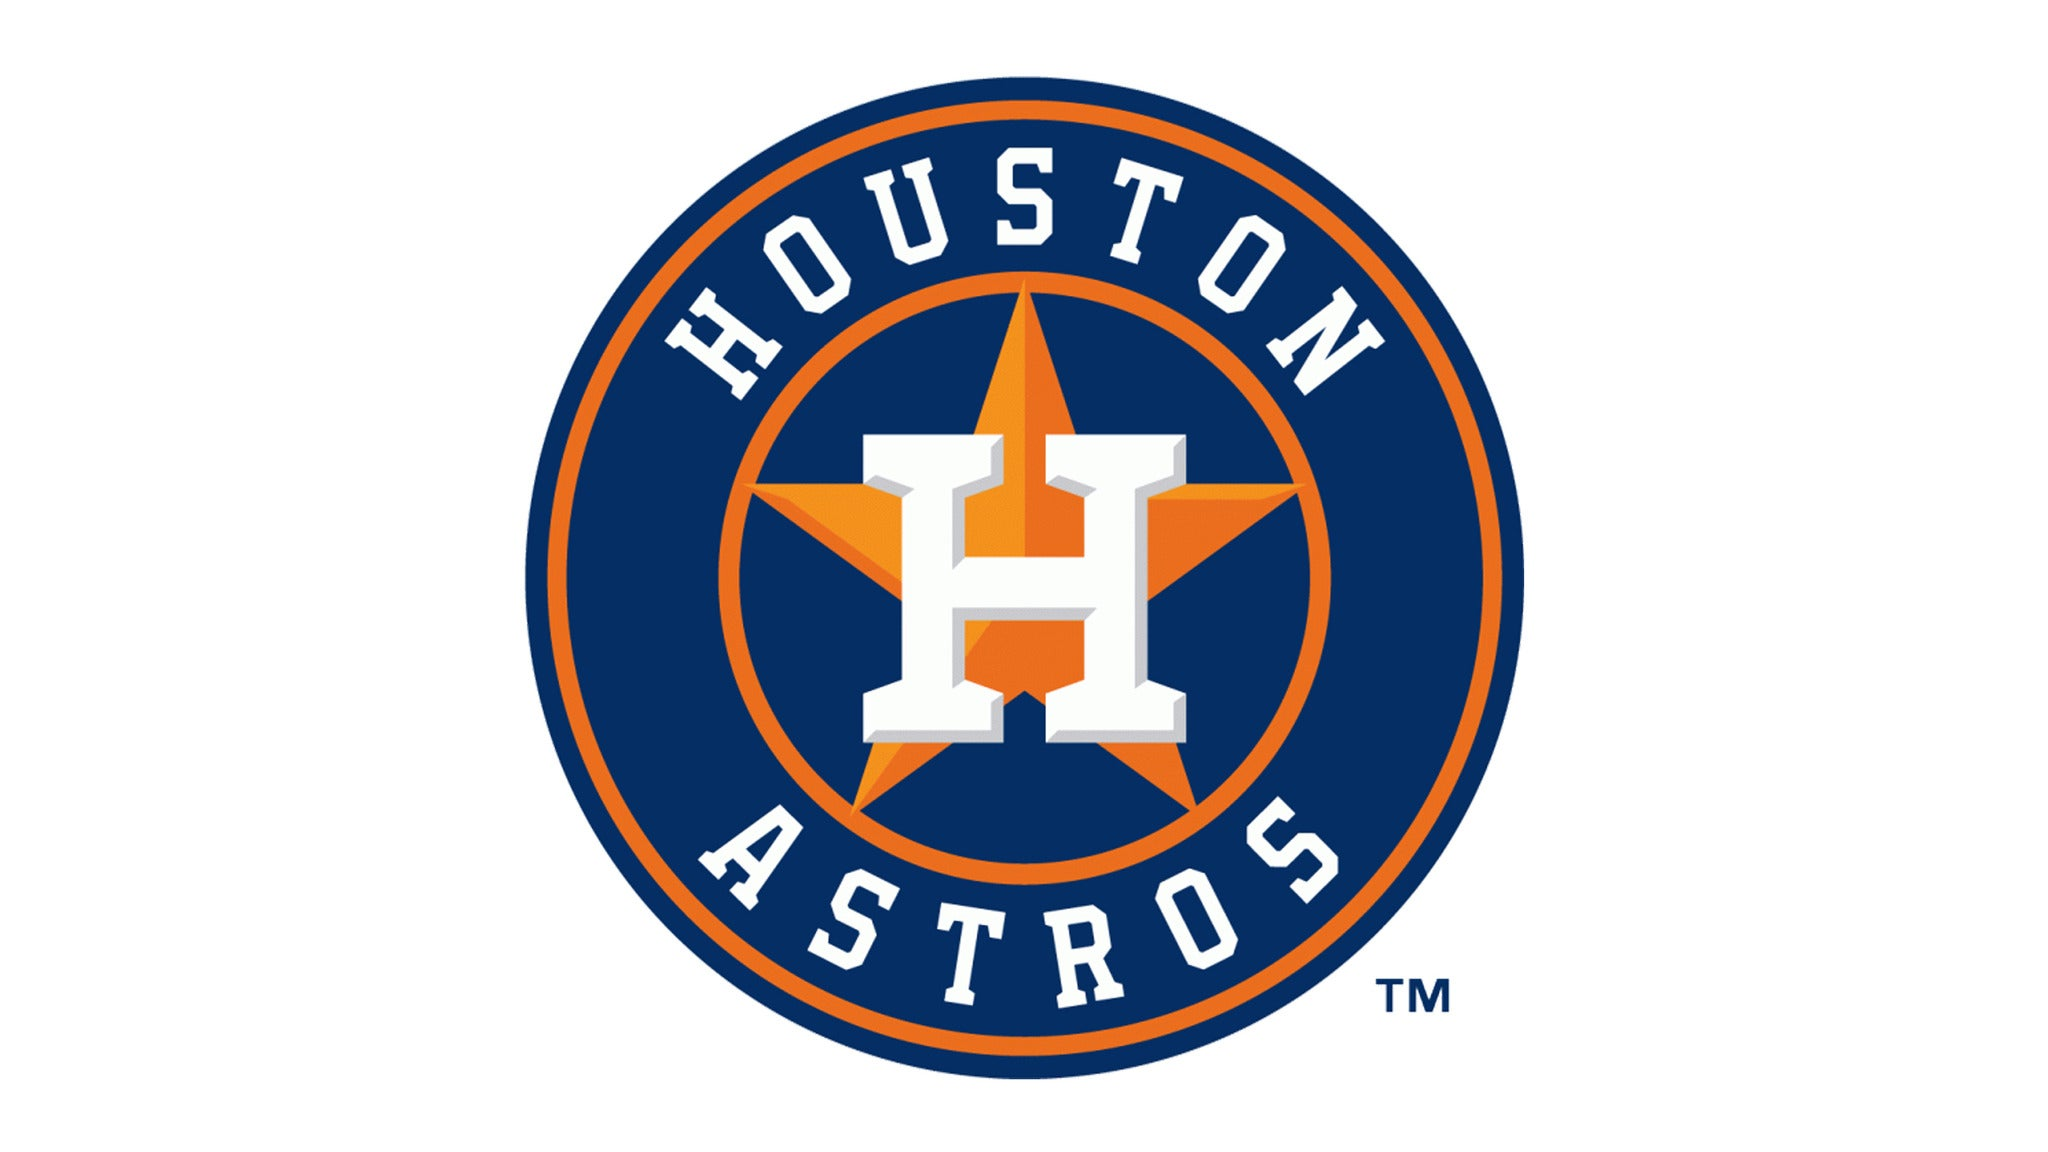 New York Mets at Houston Astros